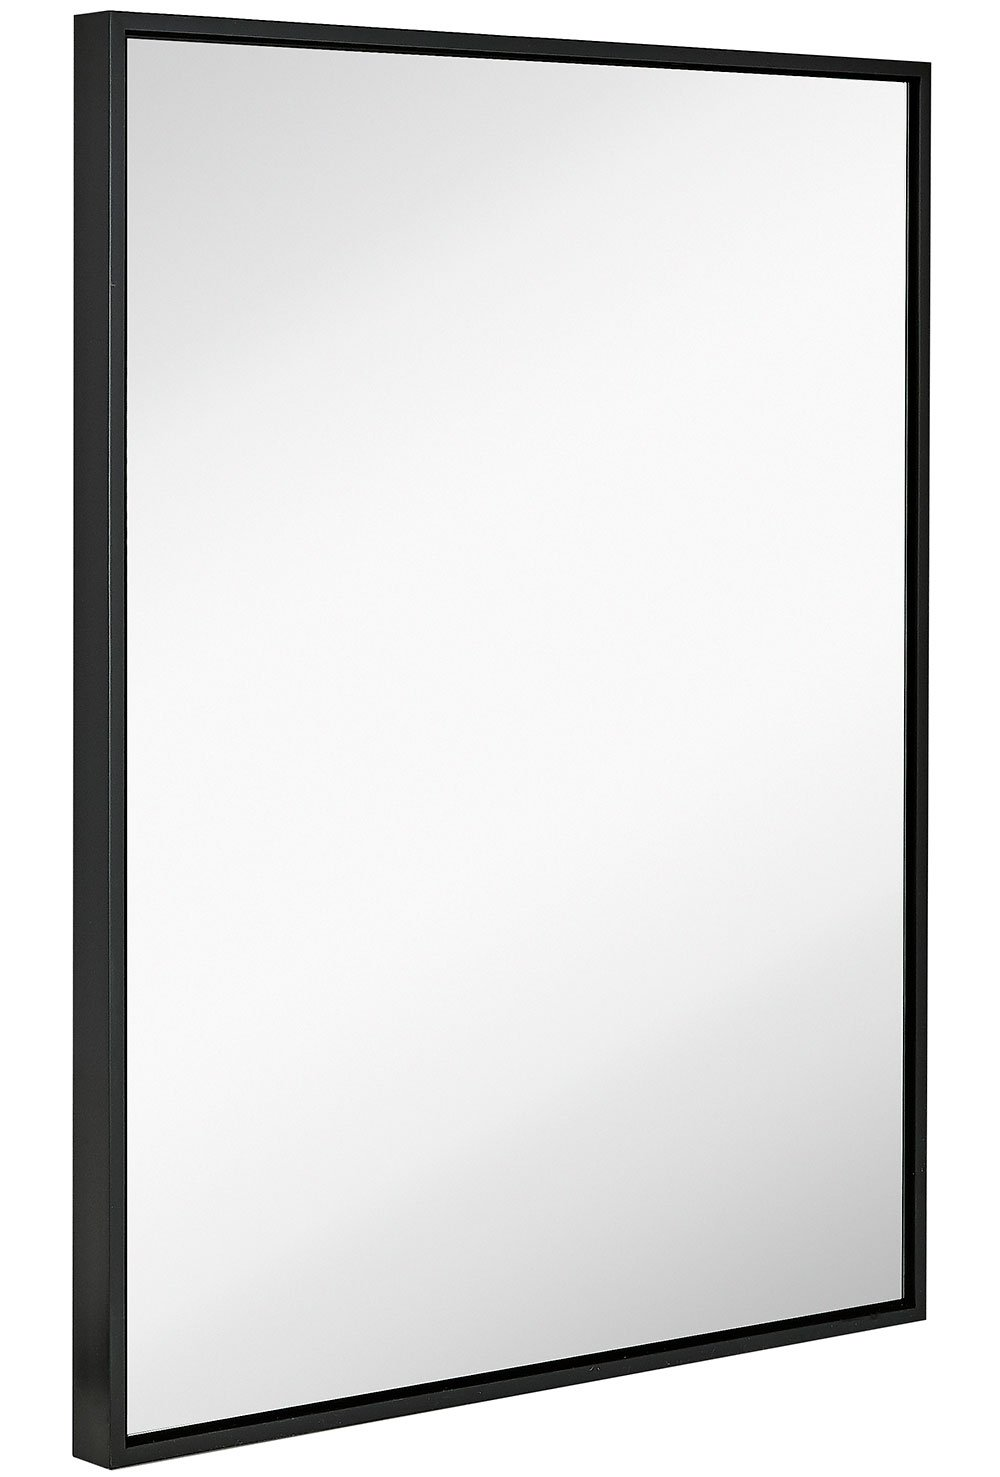 Clean Large Modern Black Frame Wall Mirror | Contemporary Premium Silver Backed Floating Glass Panel | Vanity, Bedroom, or Bathroom | Mirrored Rectangle Hangs Horizontal or Vertical